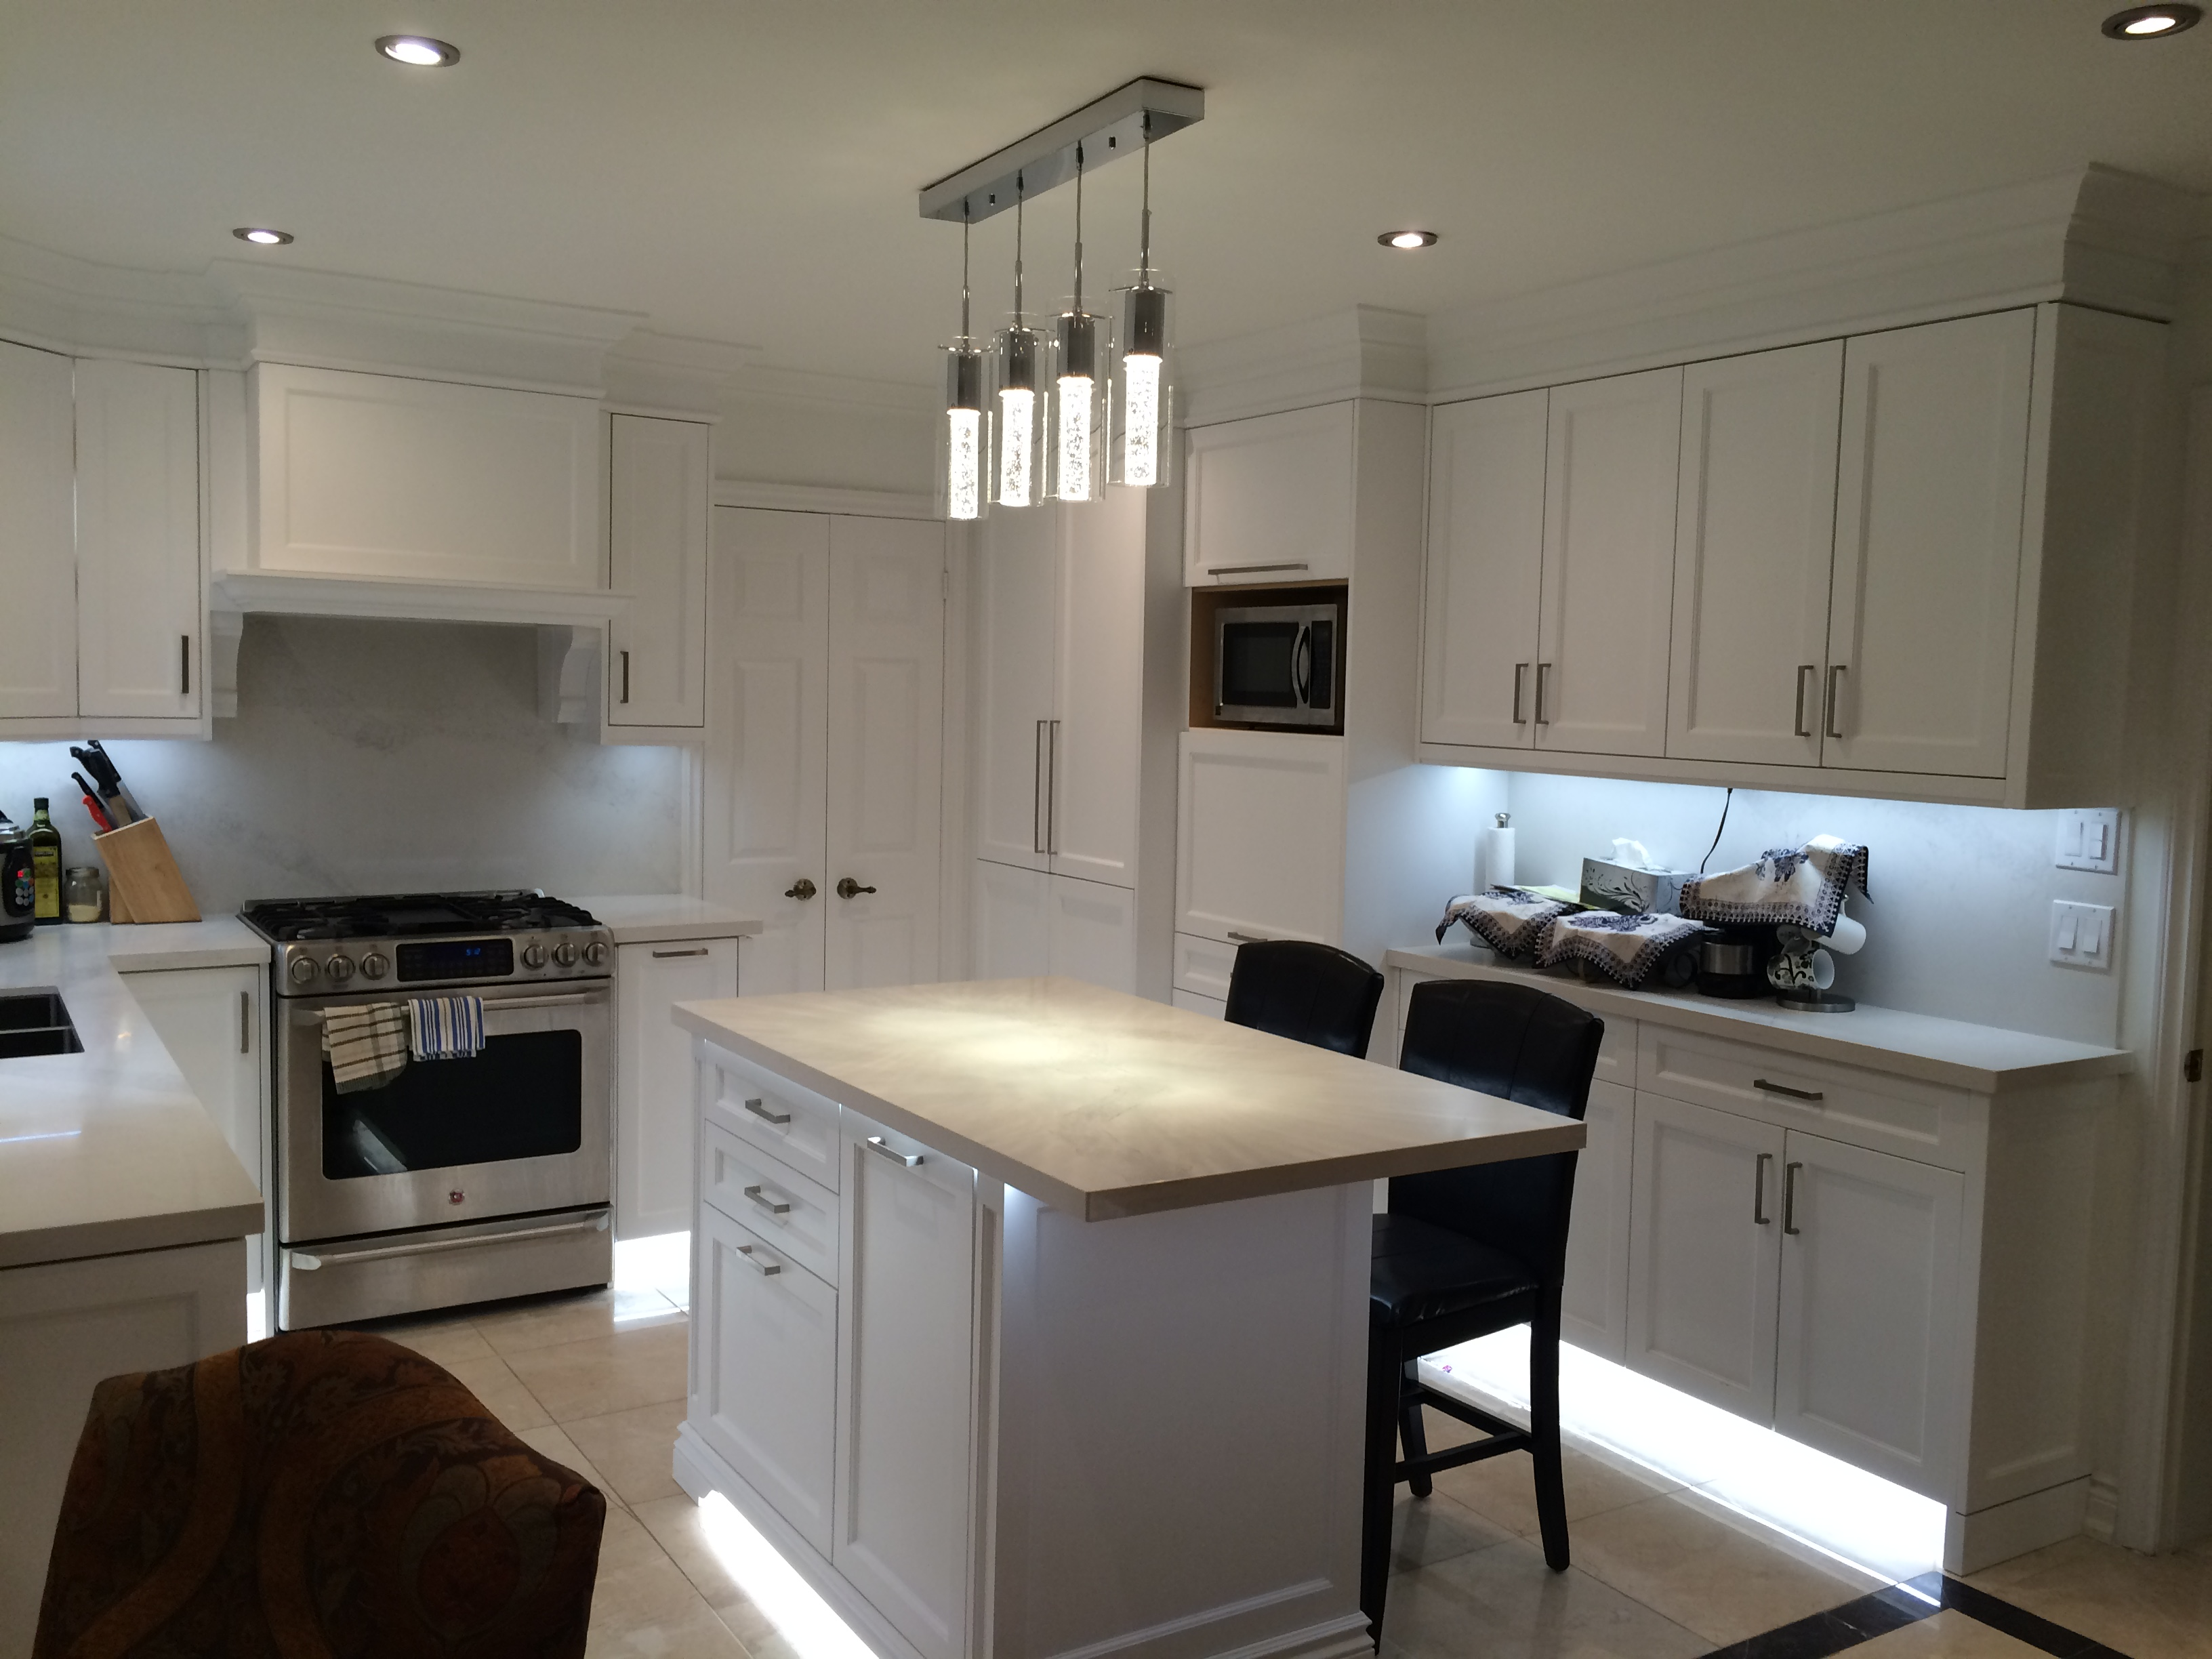 Kitchen cabinetry- small island